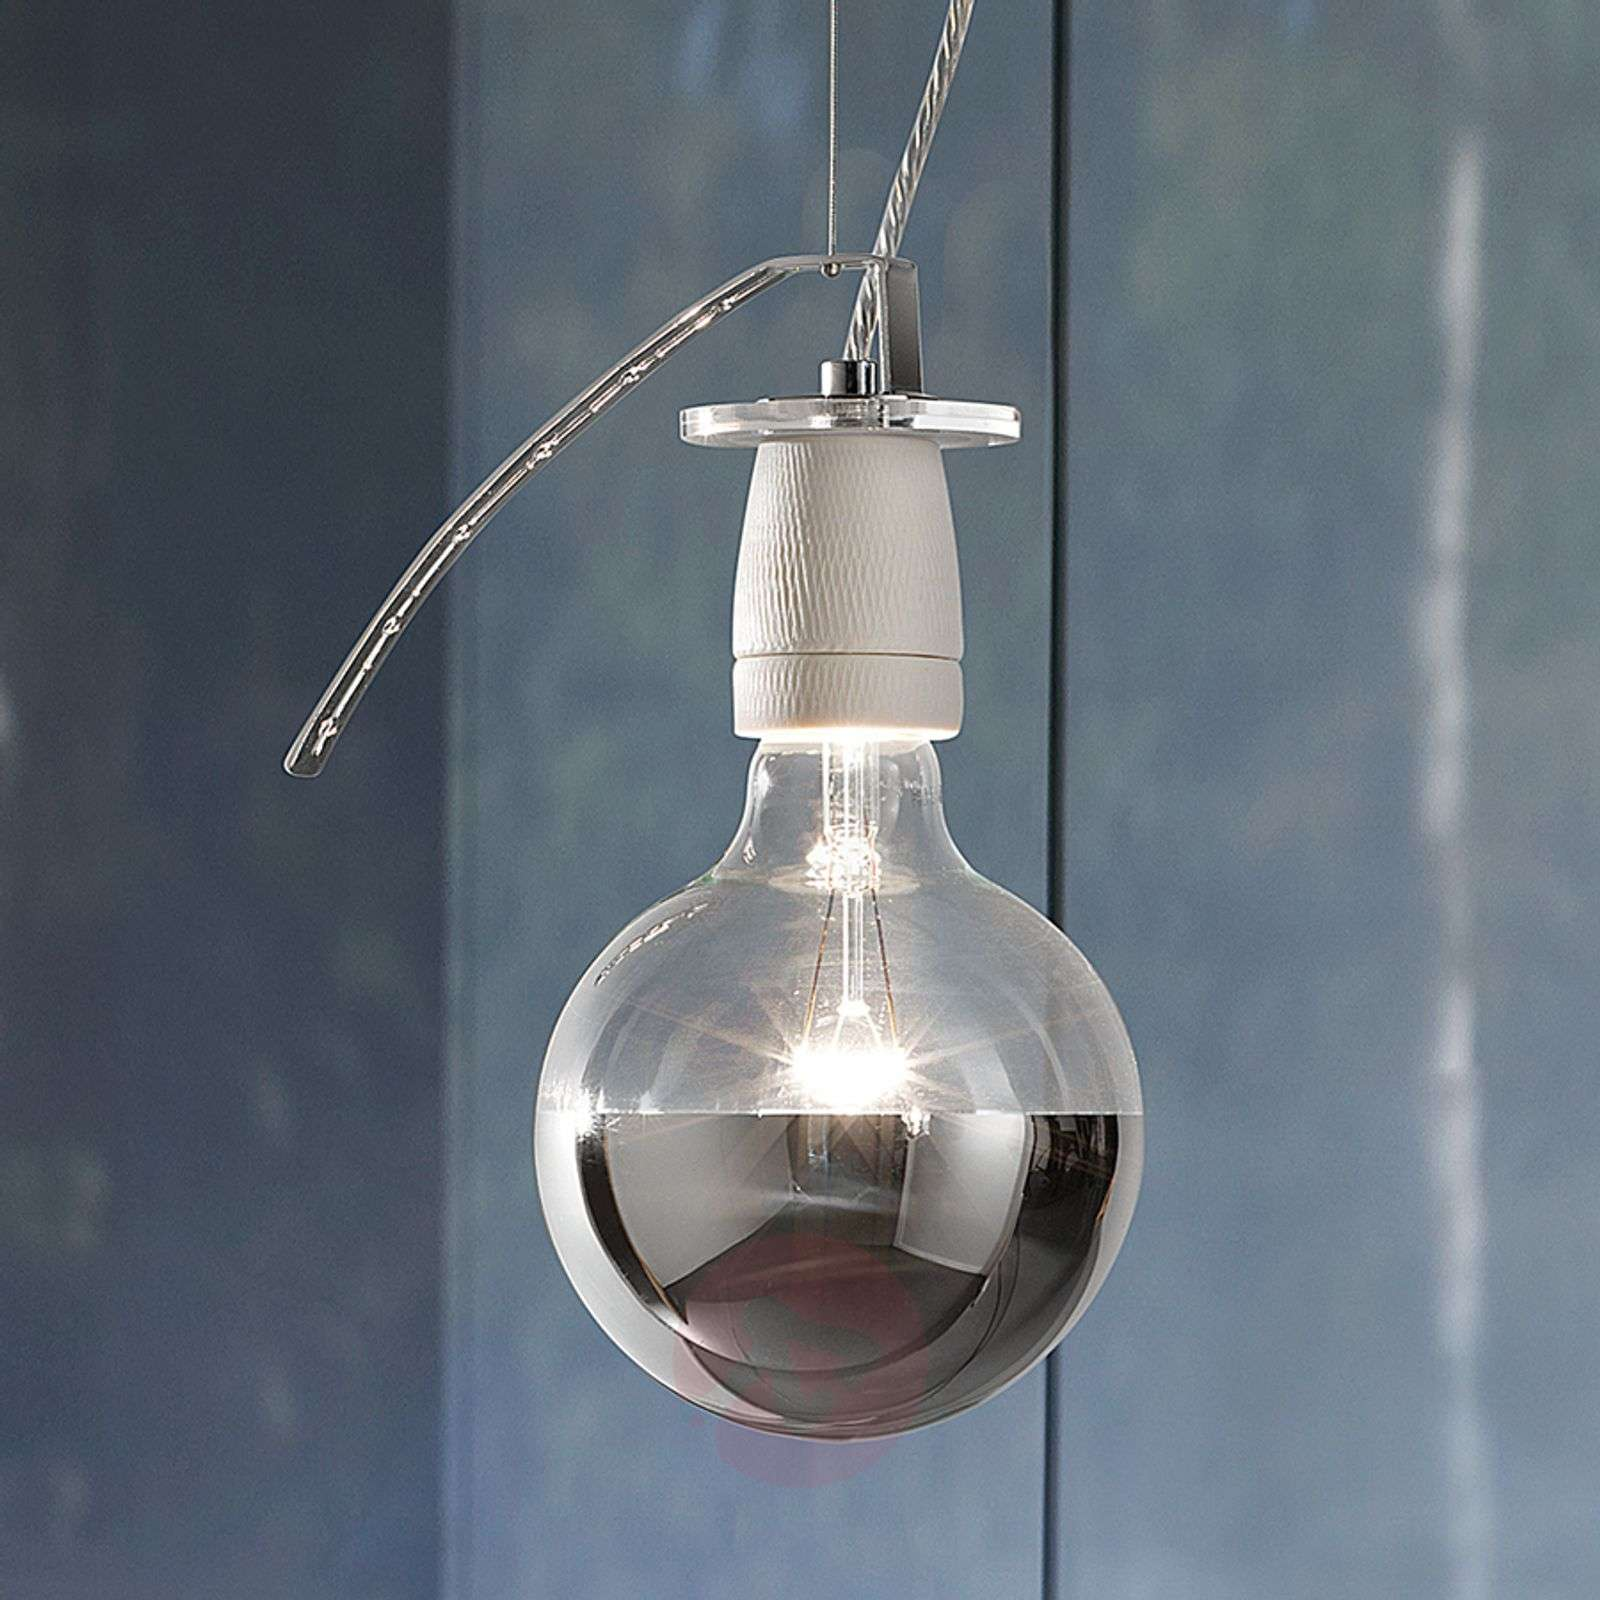 levan design bulb ab light illumi pendant lighting en ceiling